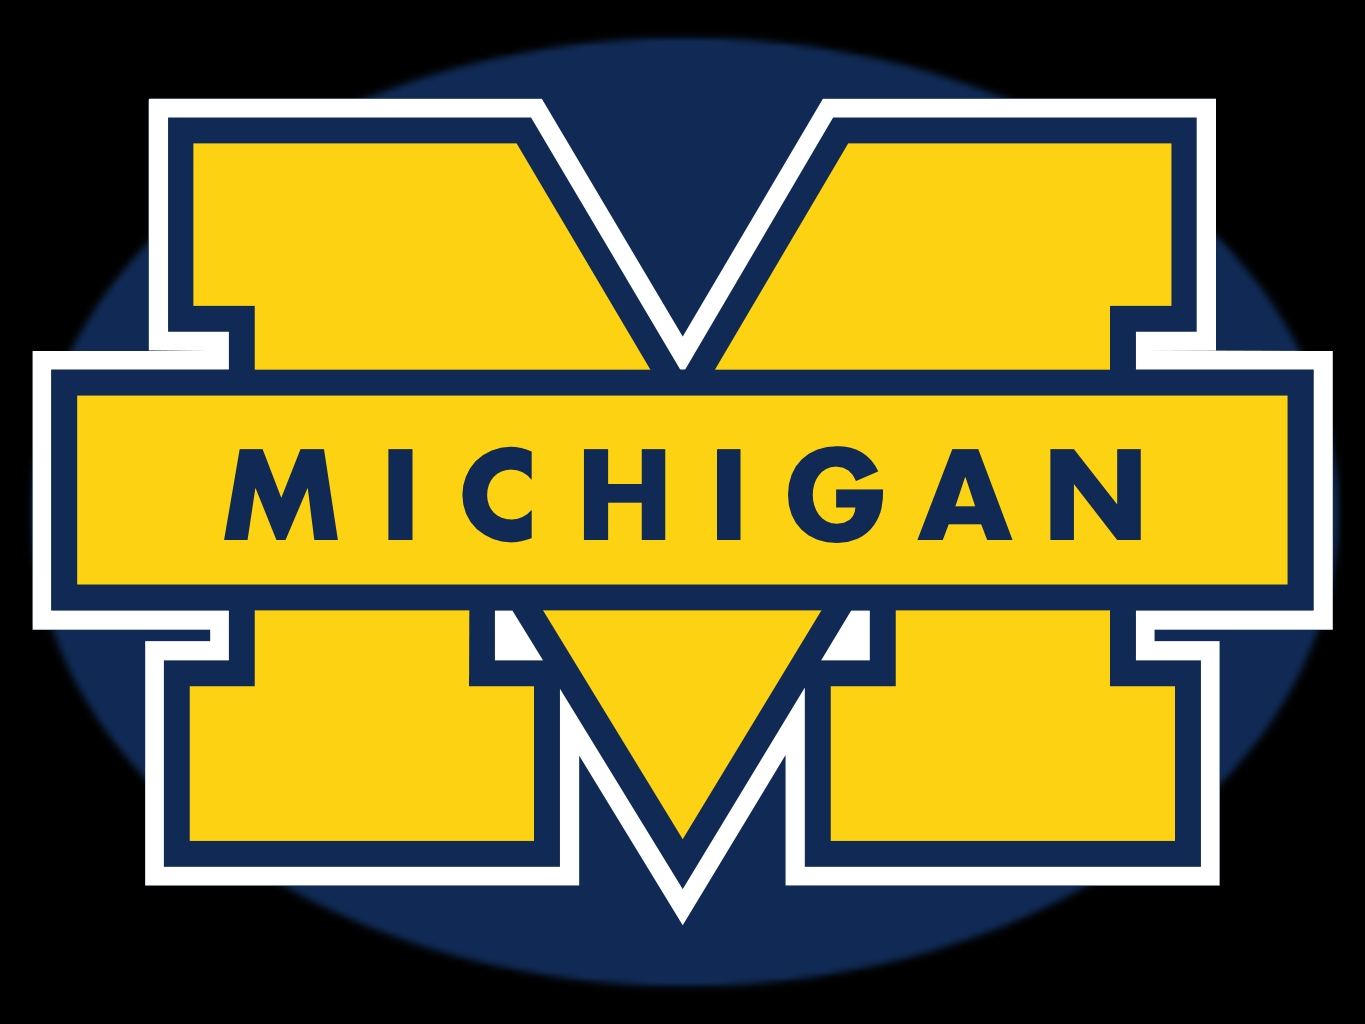 michigan wolverines logo wallpaper 1365x1024